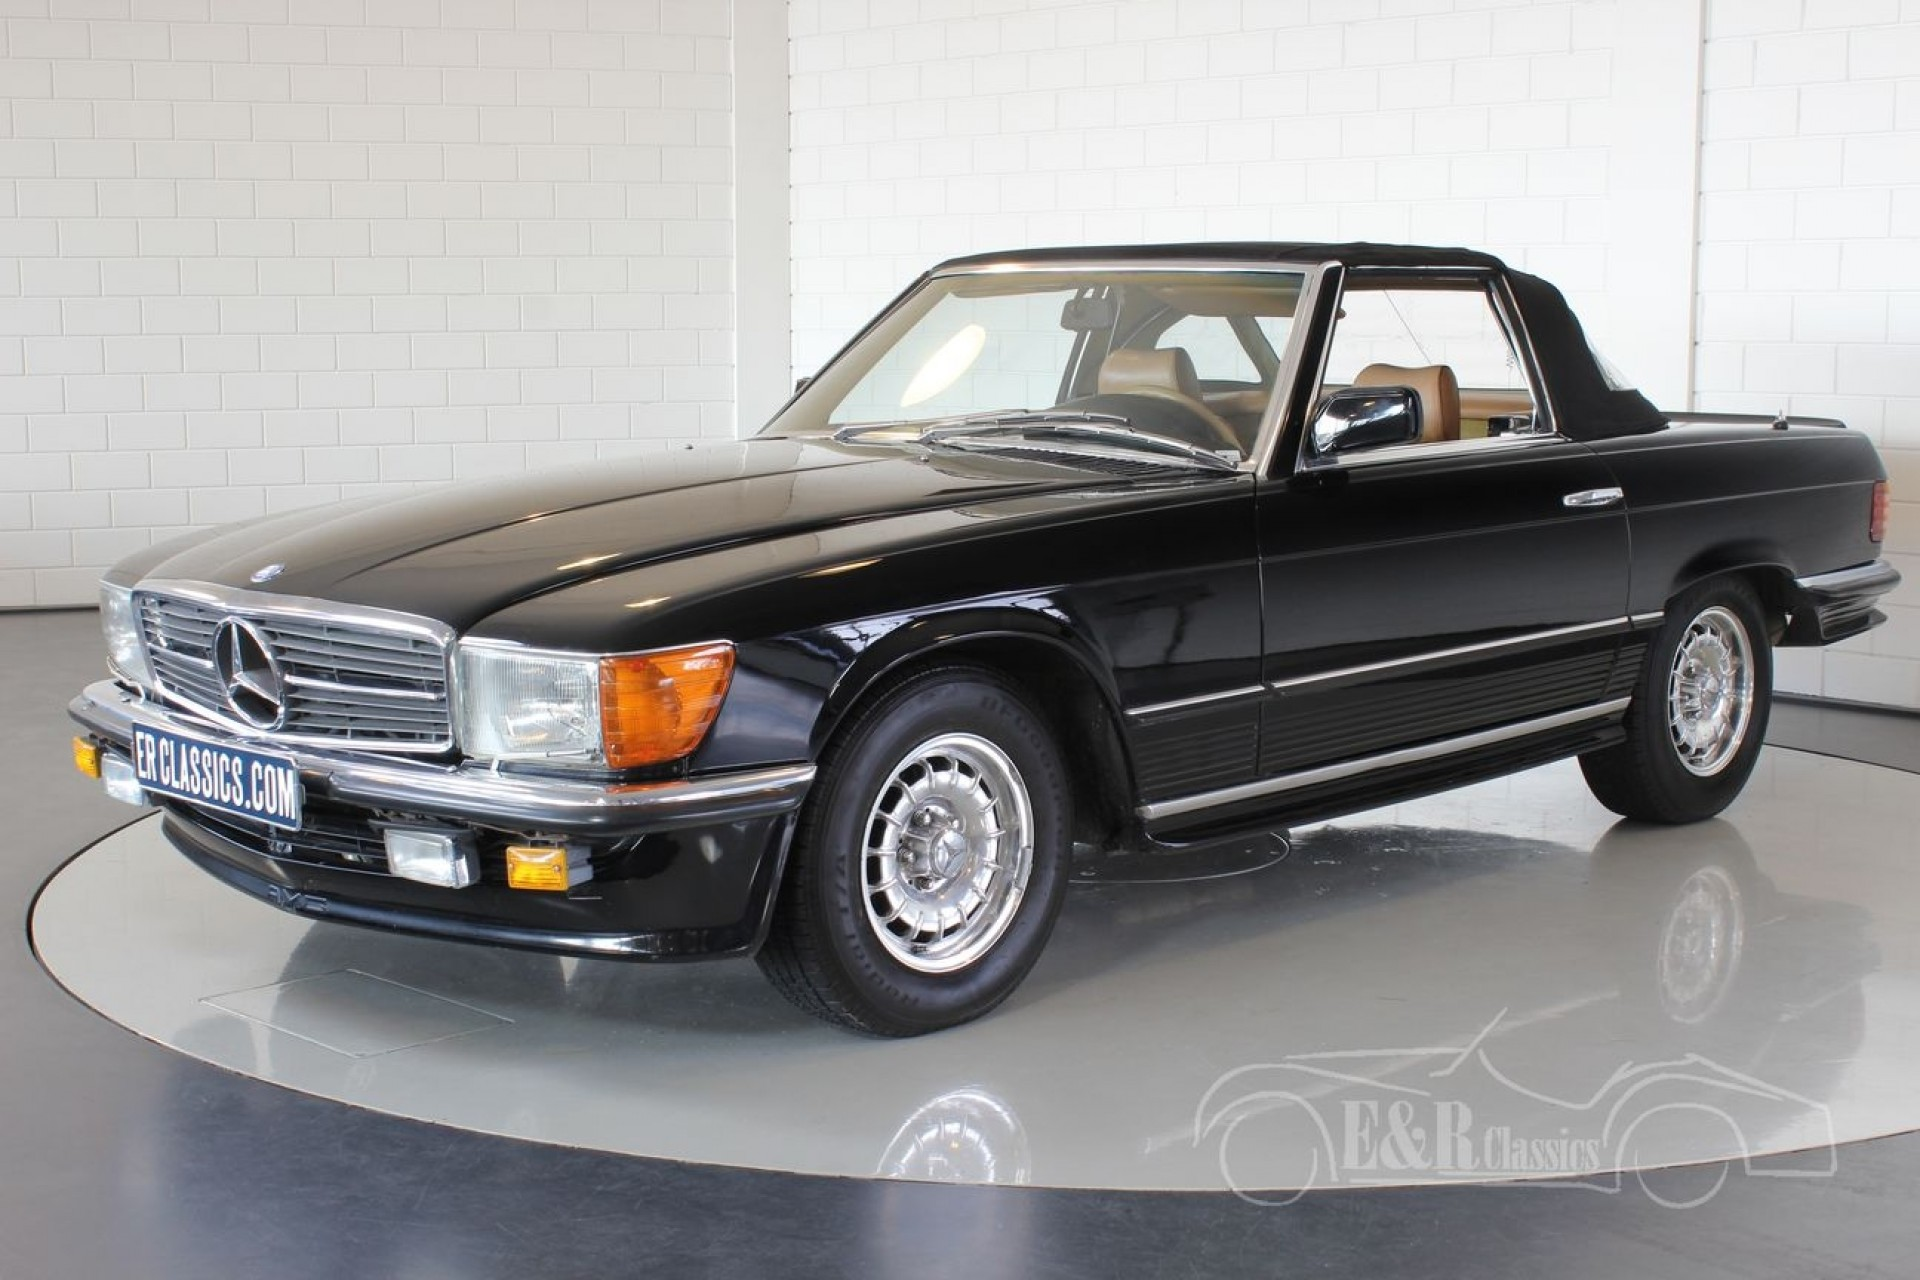 Mercedes benz 380 sl cabriolet 1985 for sale at erclassics for Mercedes benz sl550 for sale